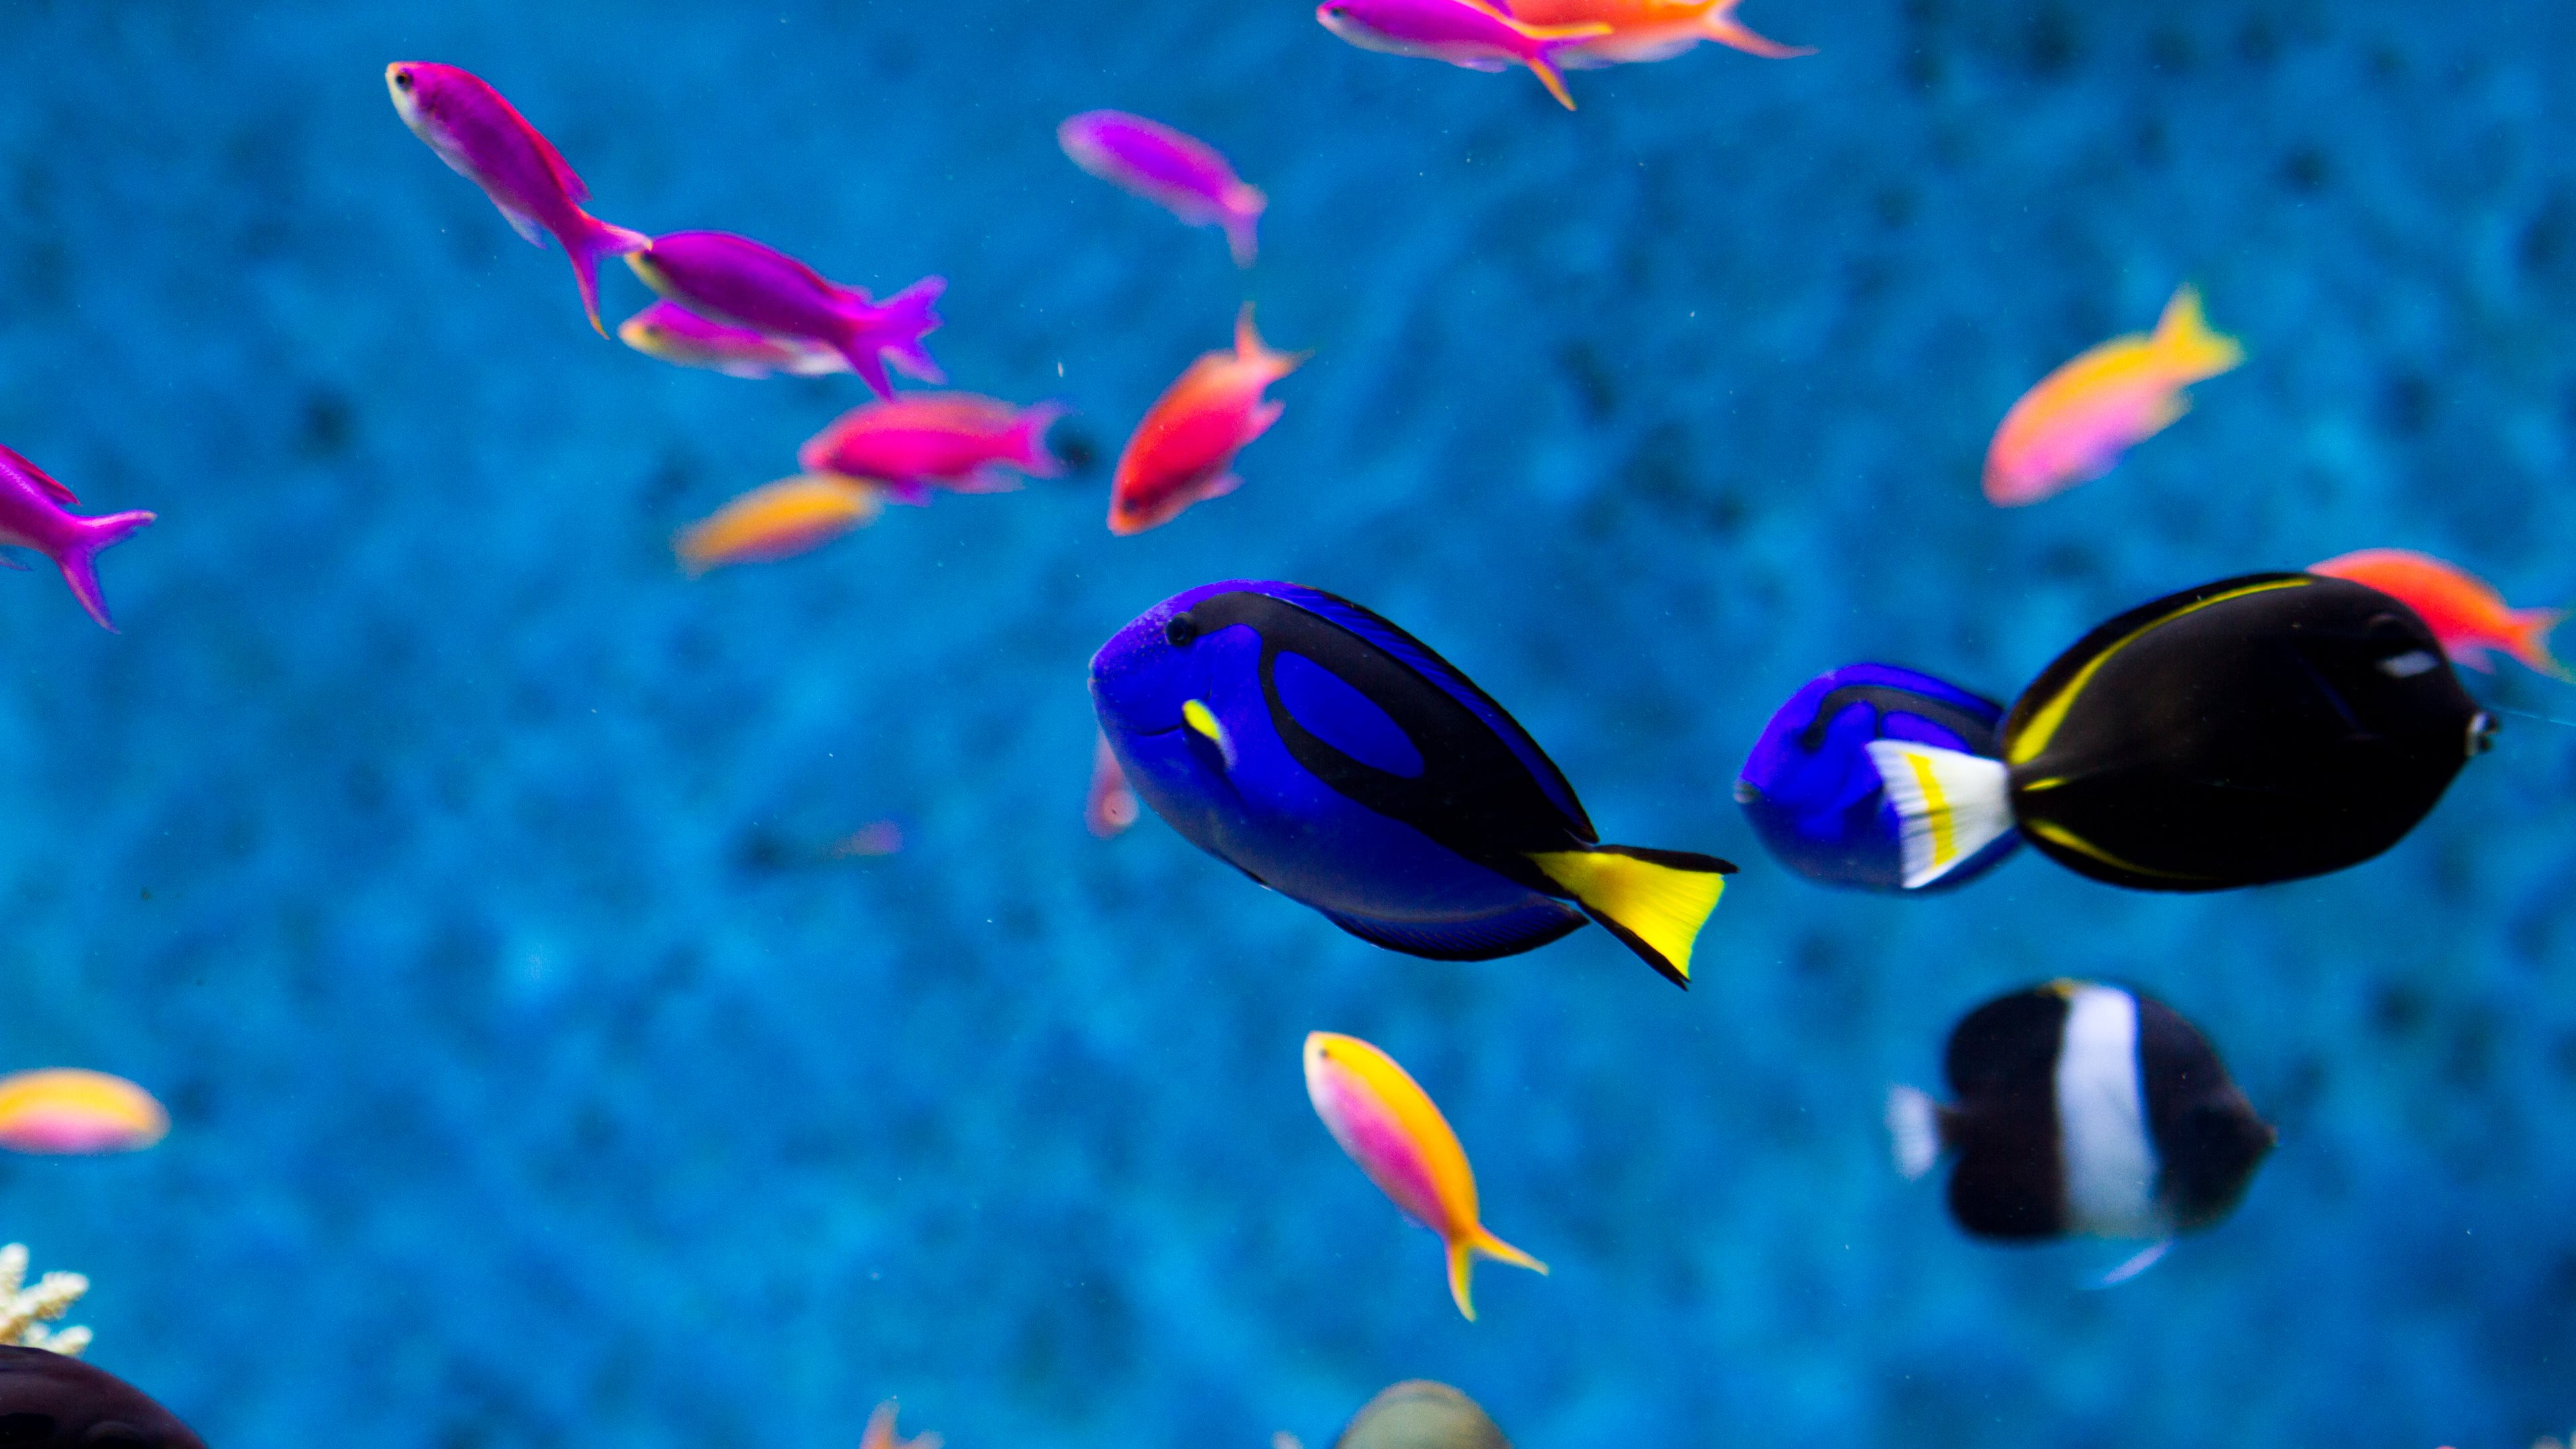 4k Fish Wallpapers High Quality Download Free